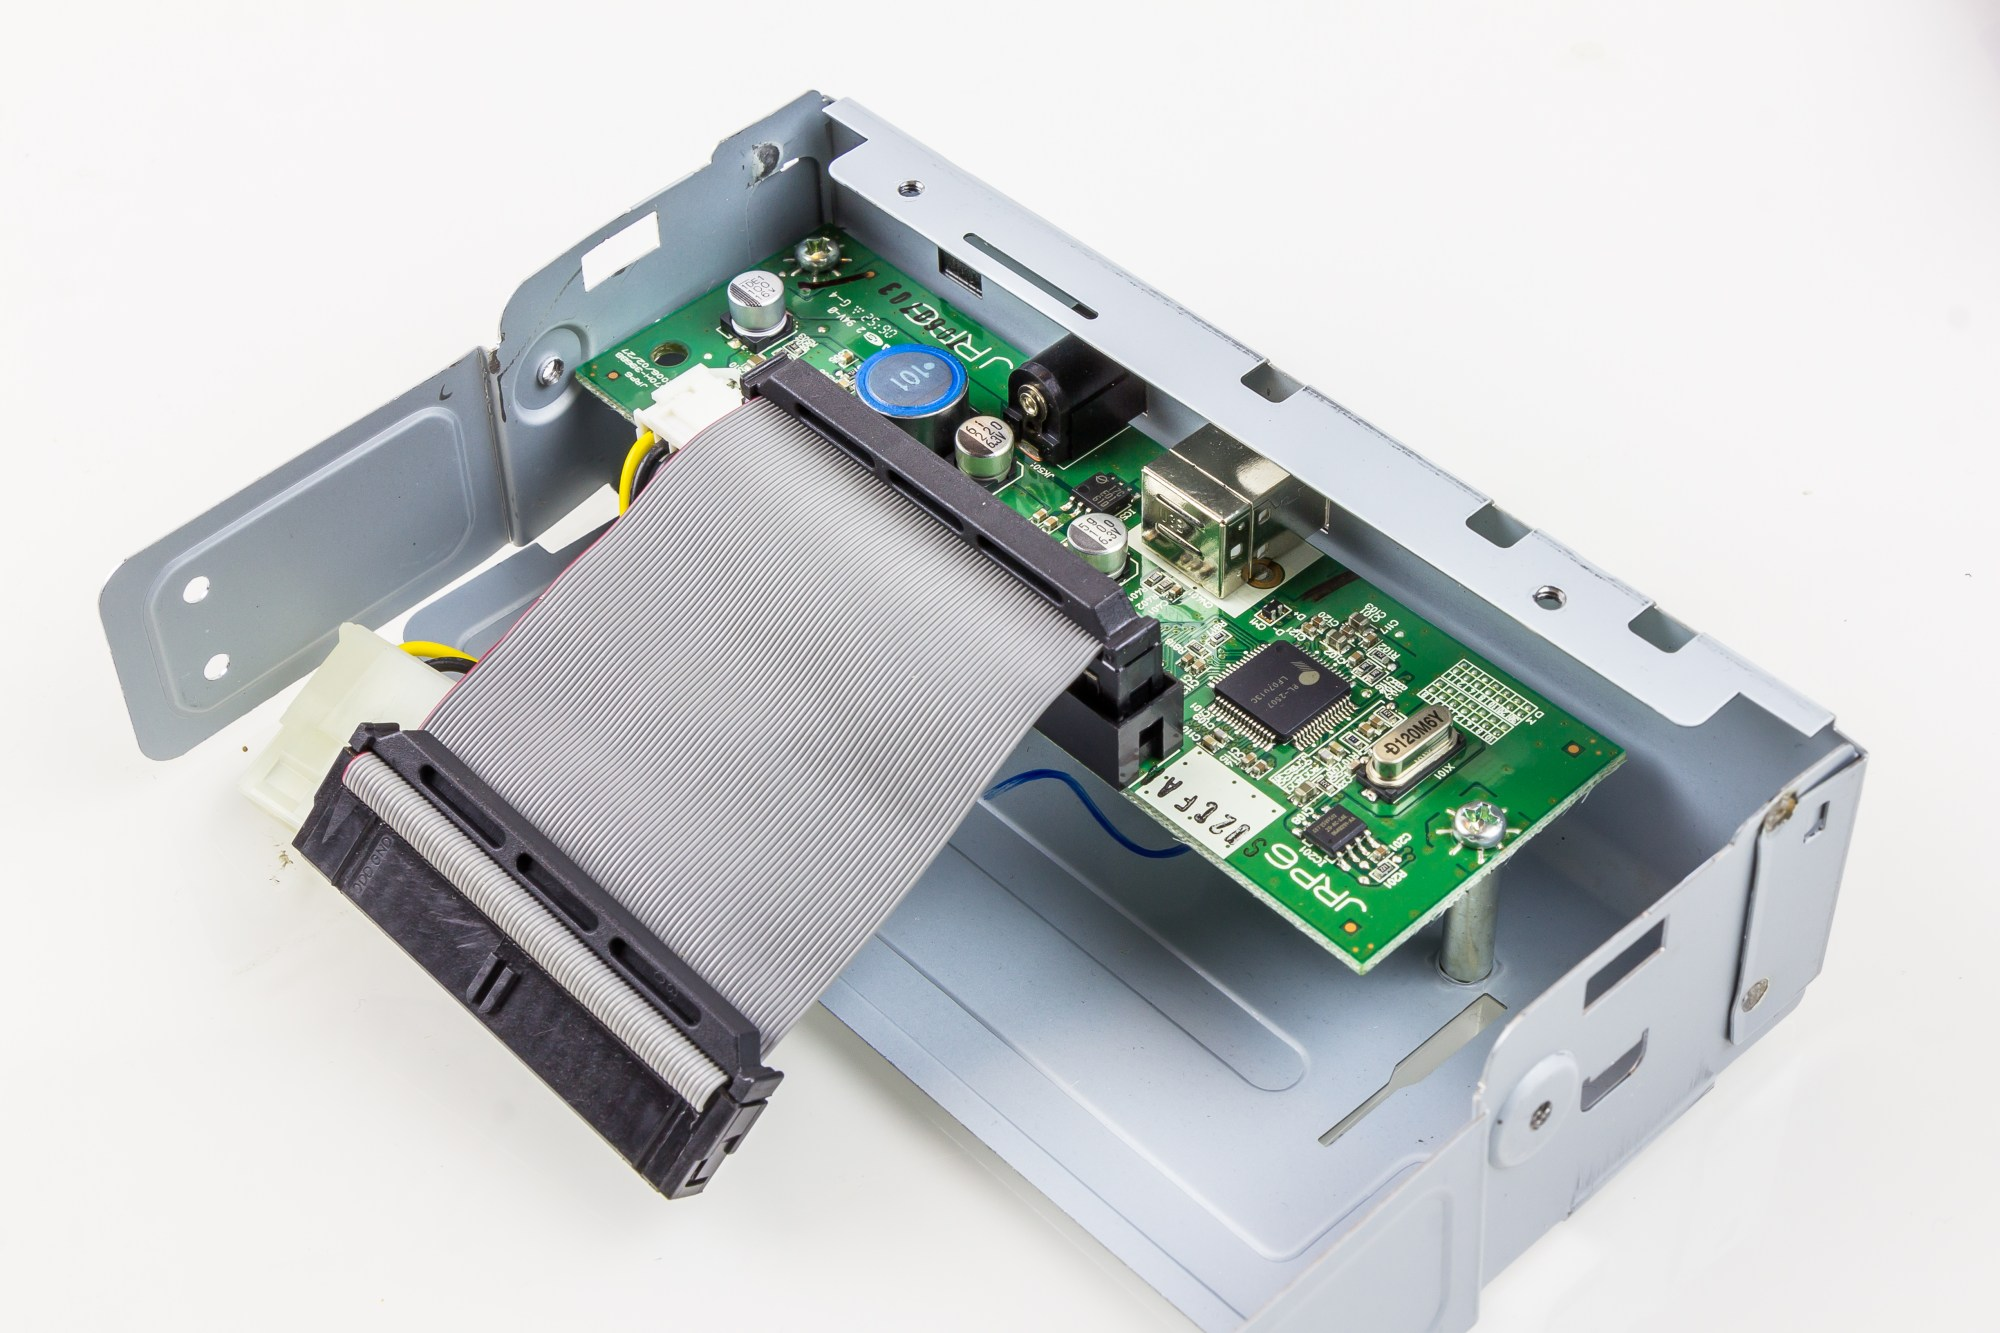 hight resolution of it is mounted on the rear of a dvd rw optical drive inside an external case